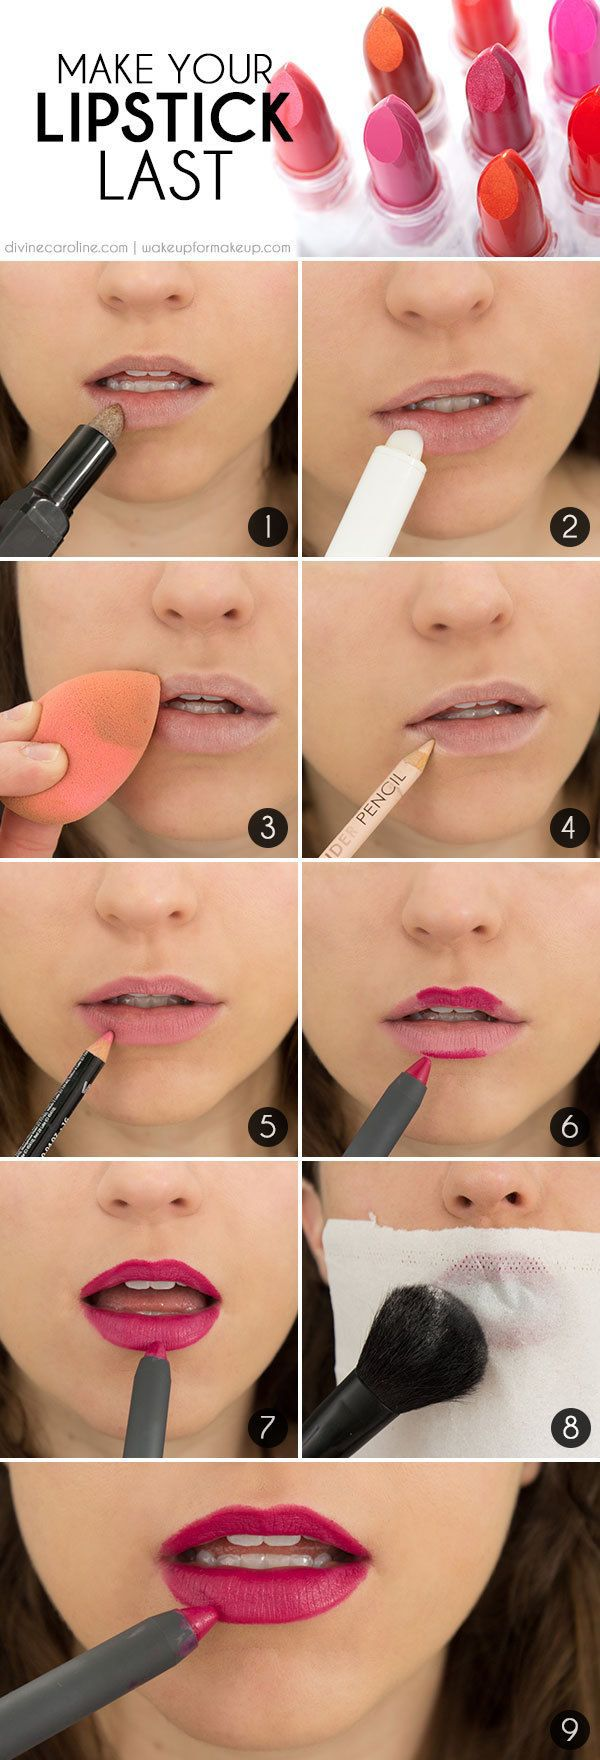 These 5 makeup tricks are guaranteed to improve your beauty routine and save you a few coins along the way.